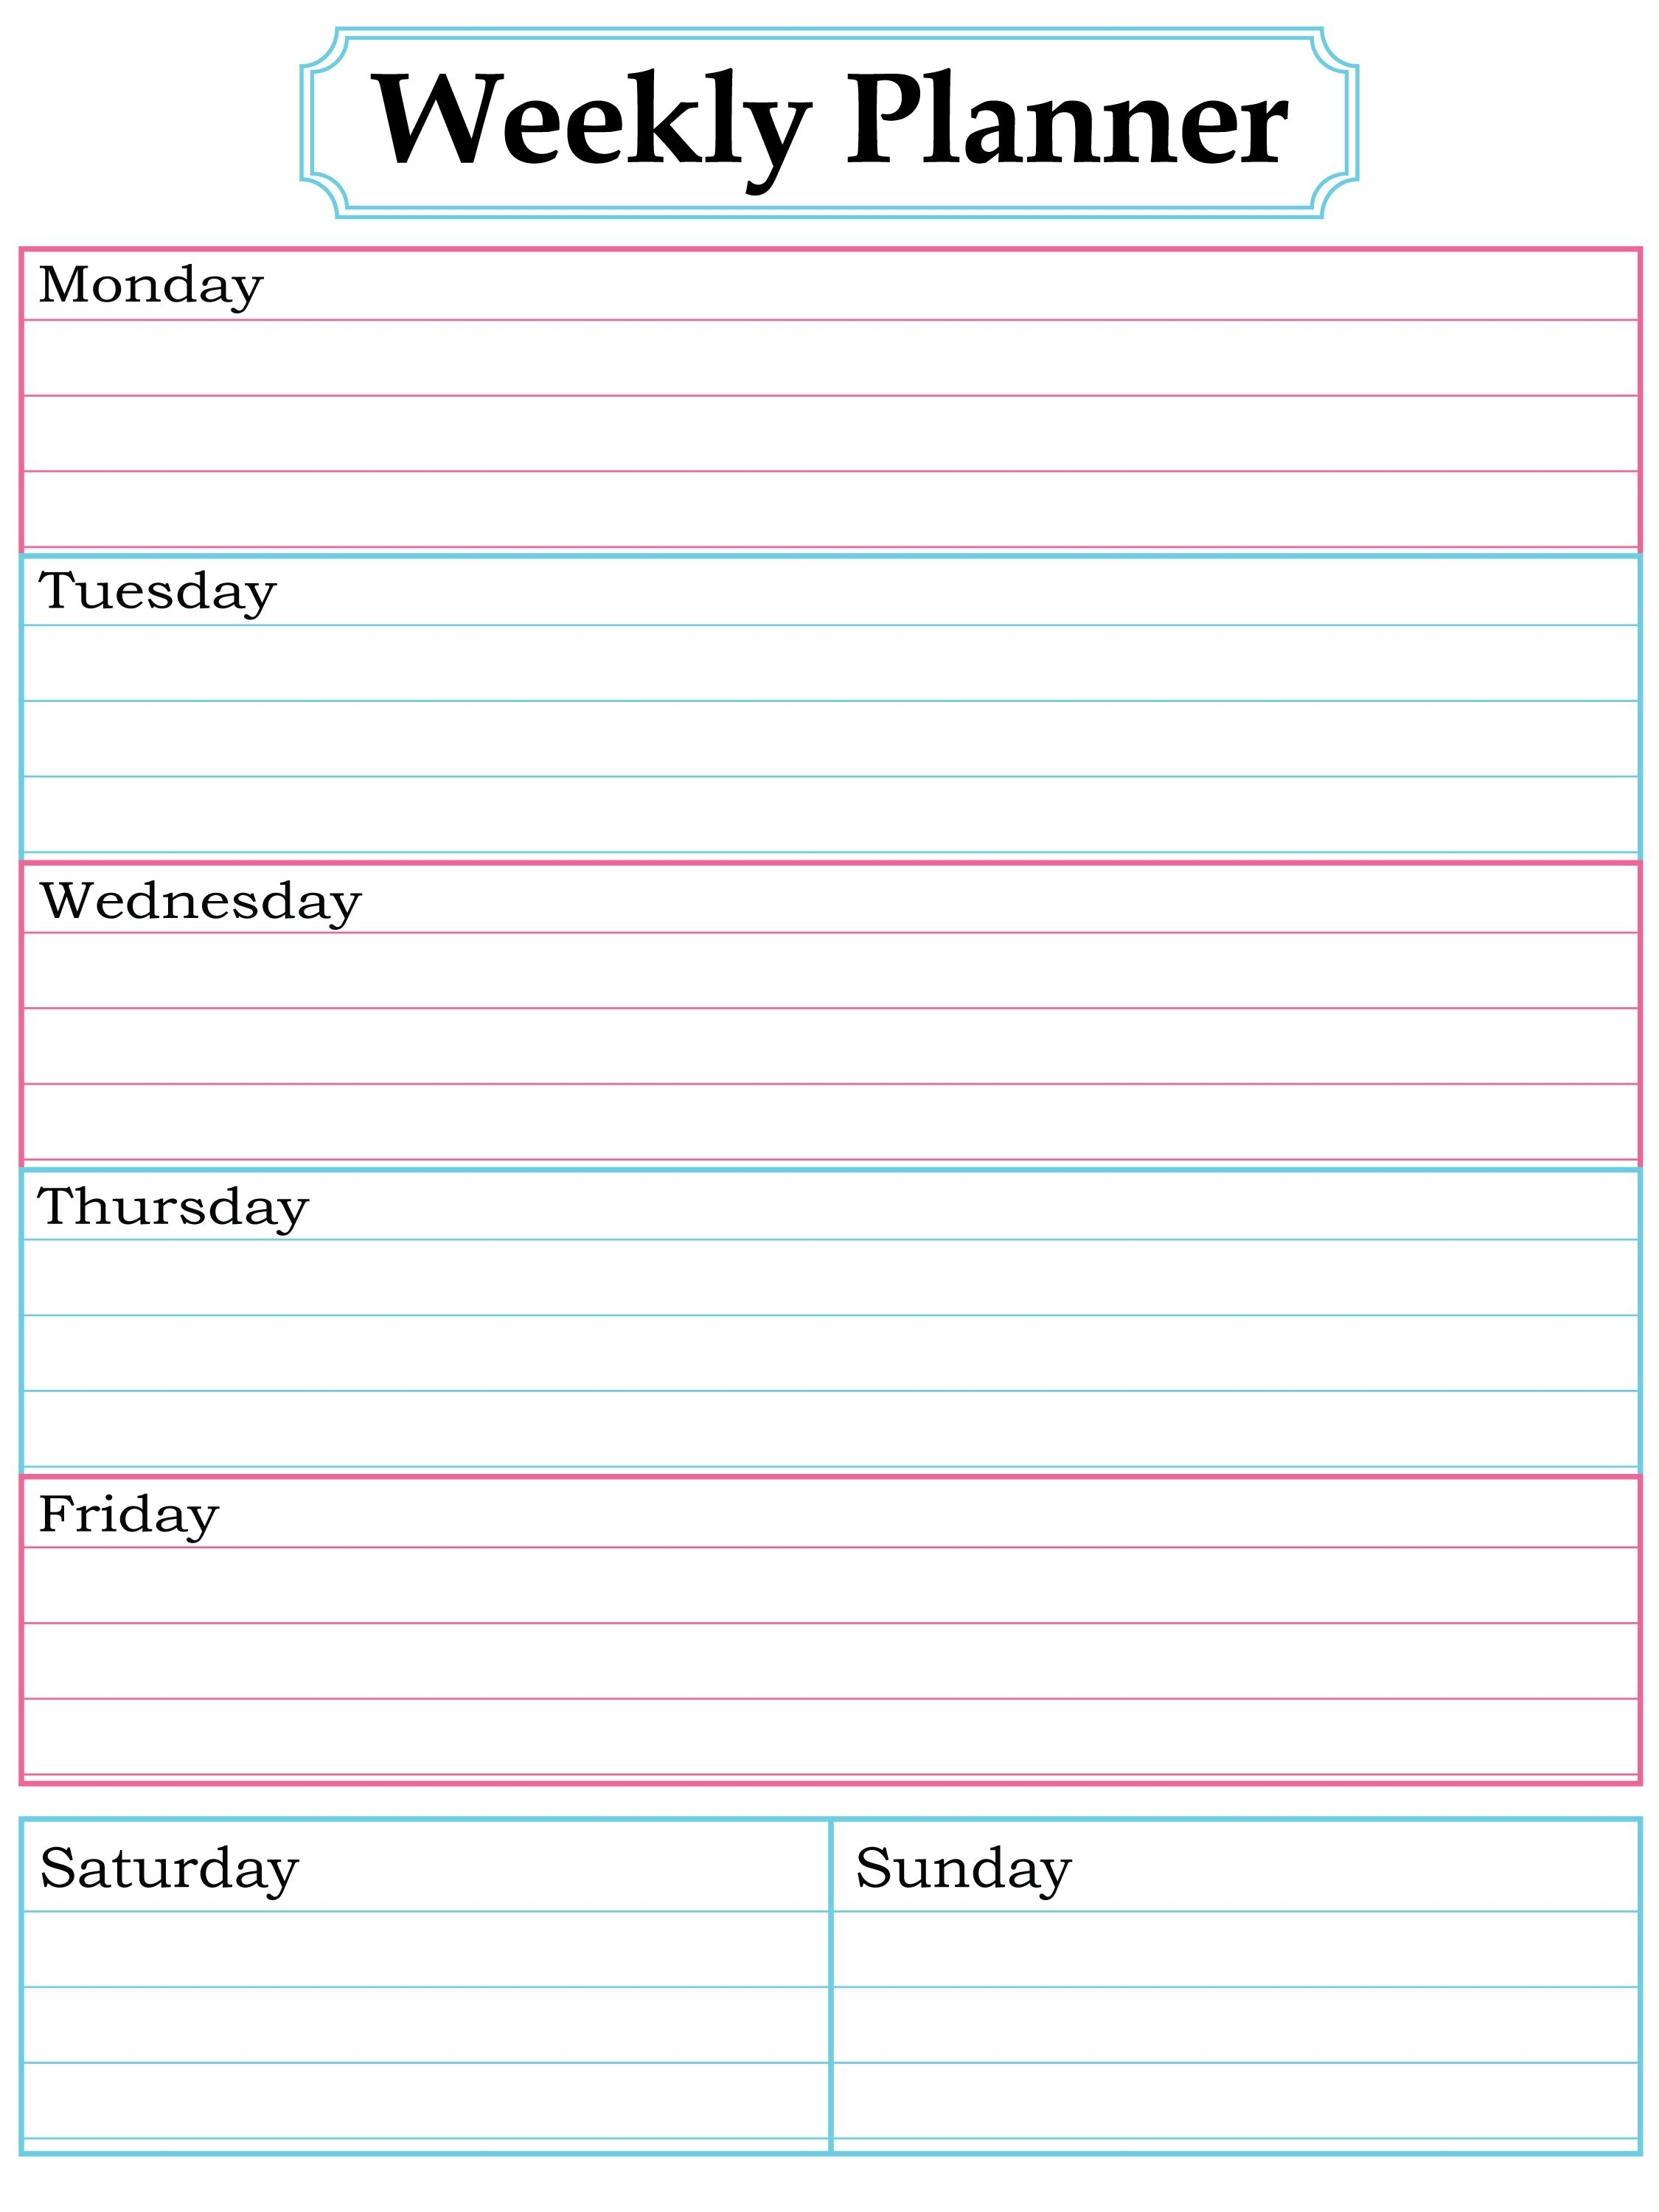 Weekly Planner Printable Nice Simple Clean Lines  School